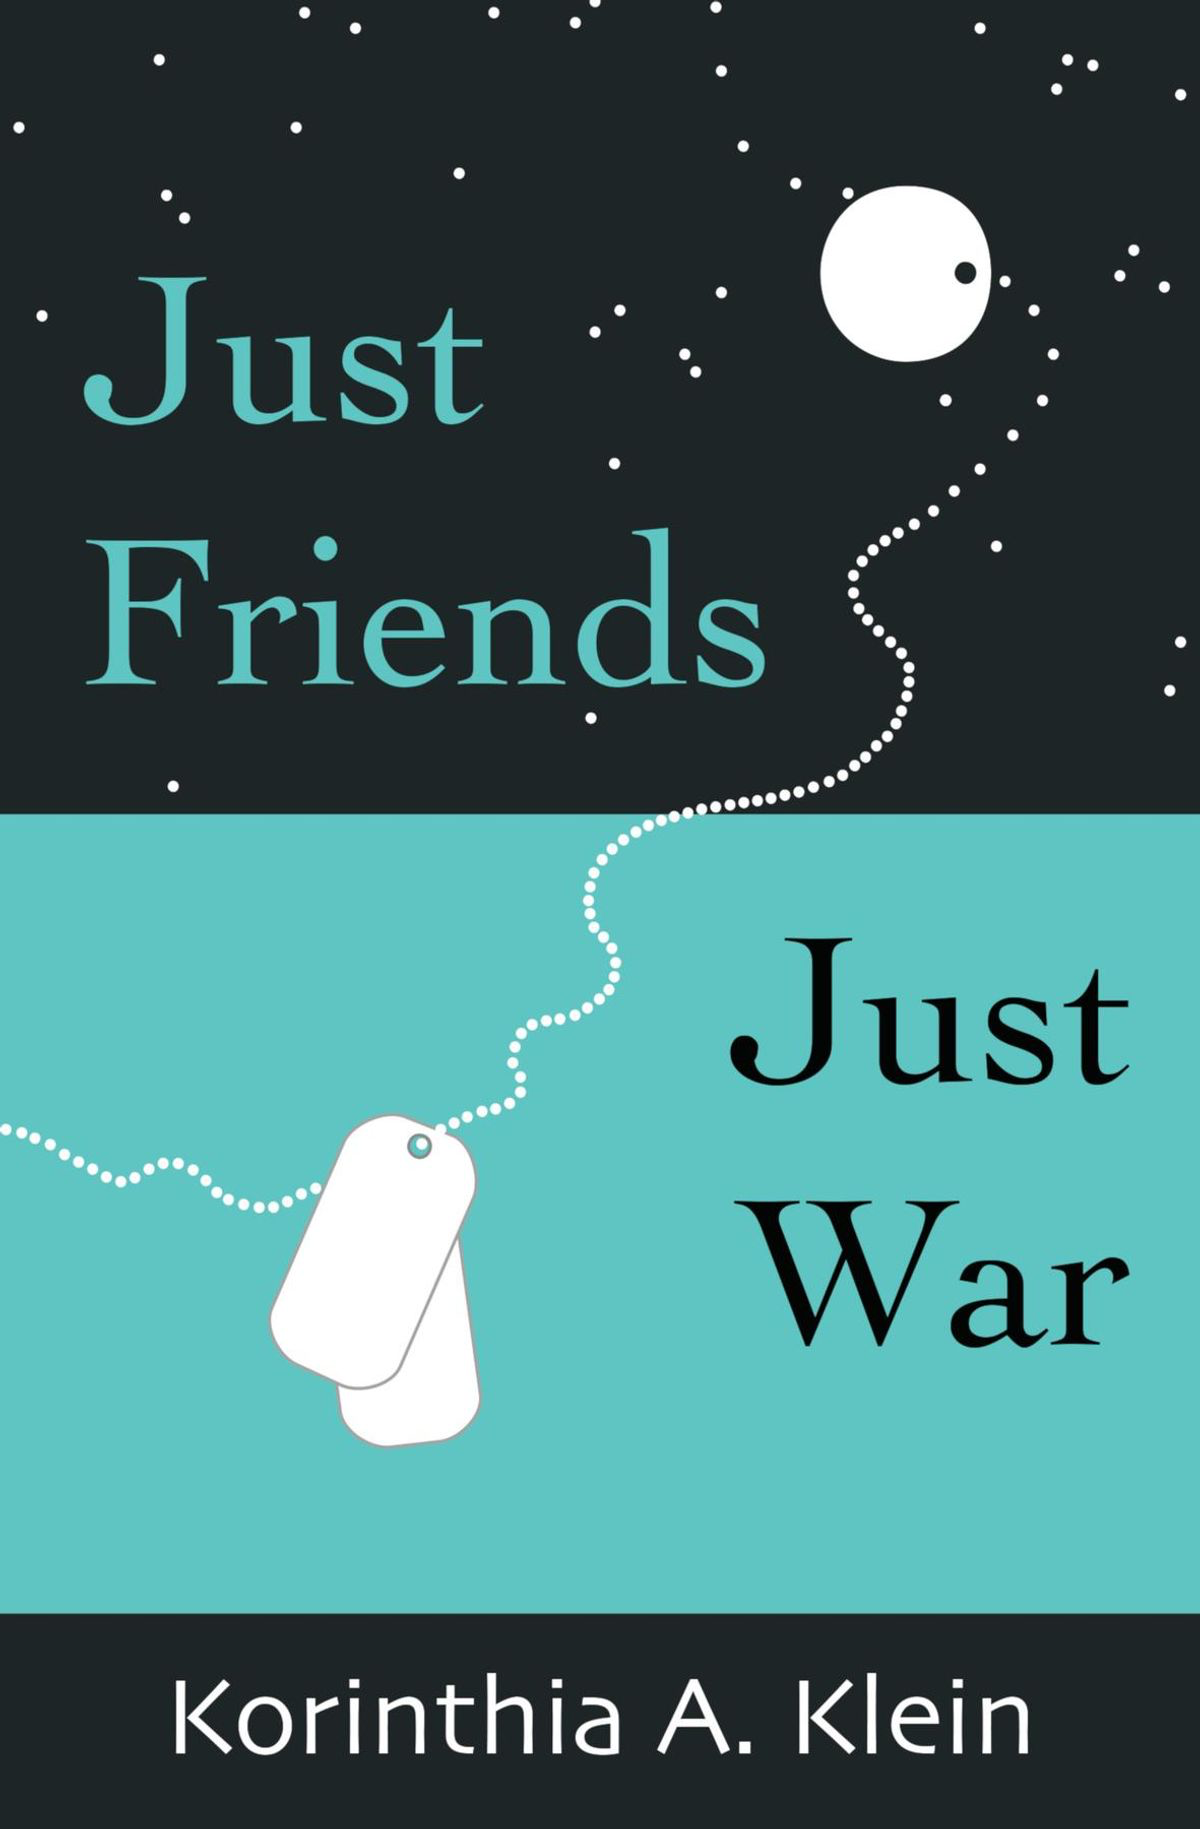 Just Friends, Just War